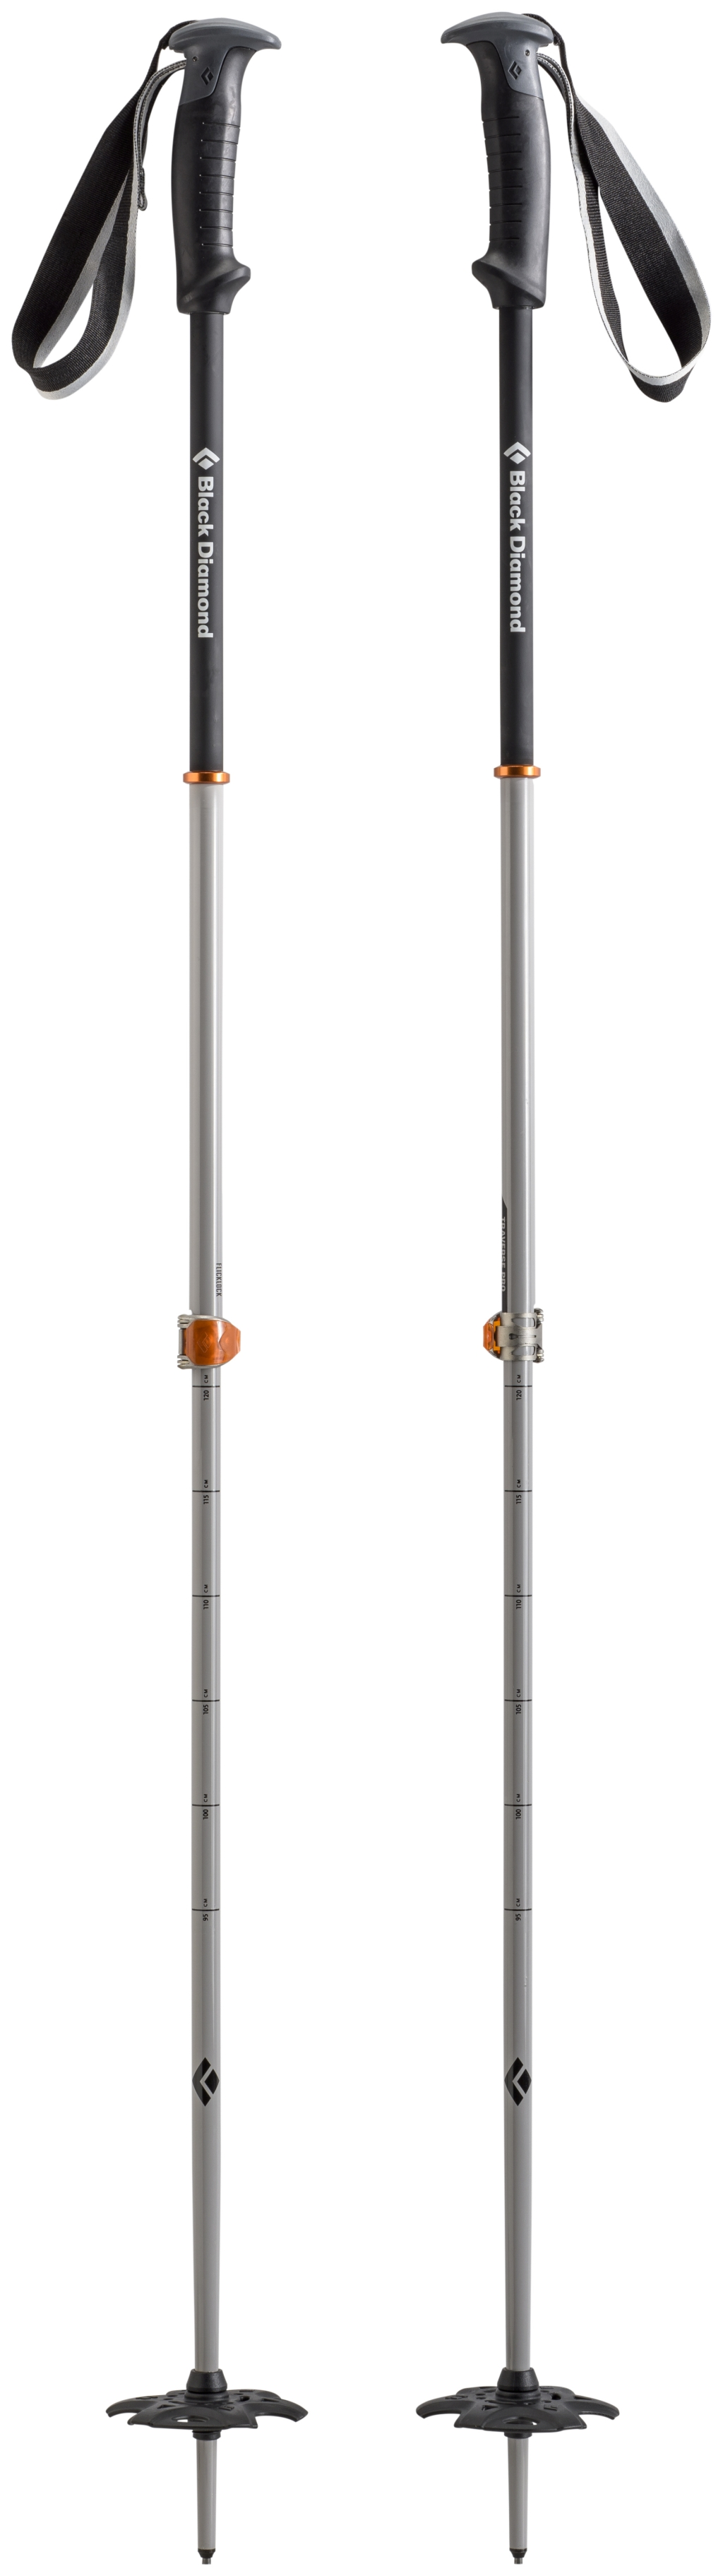 Black Diamond Traverse Pro Ski Poles No Color-30